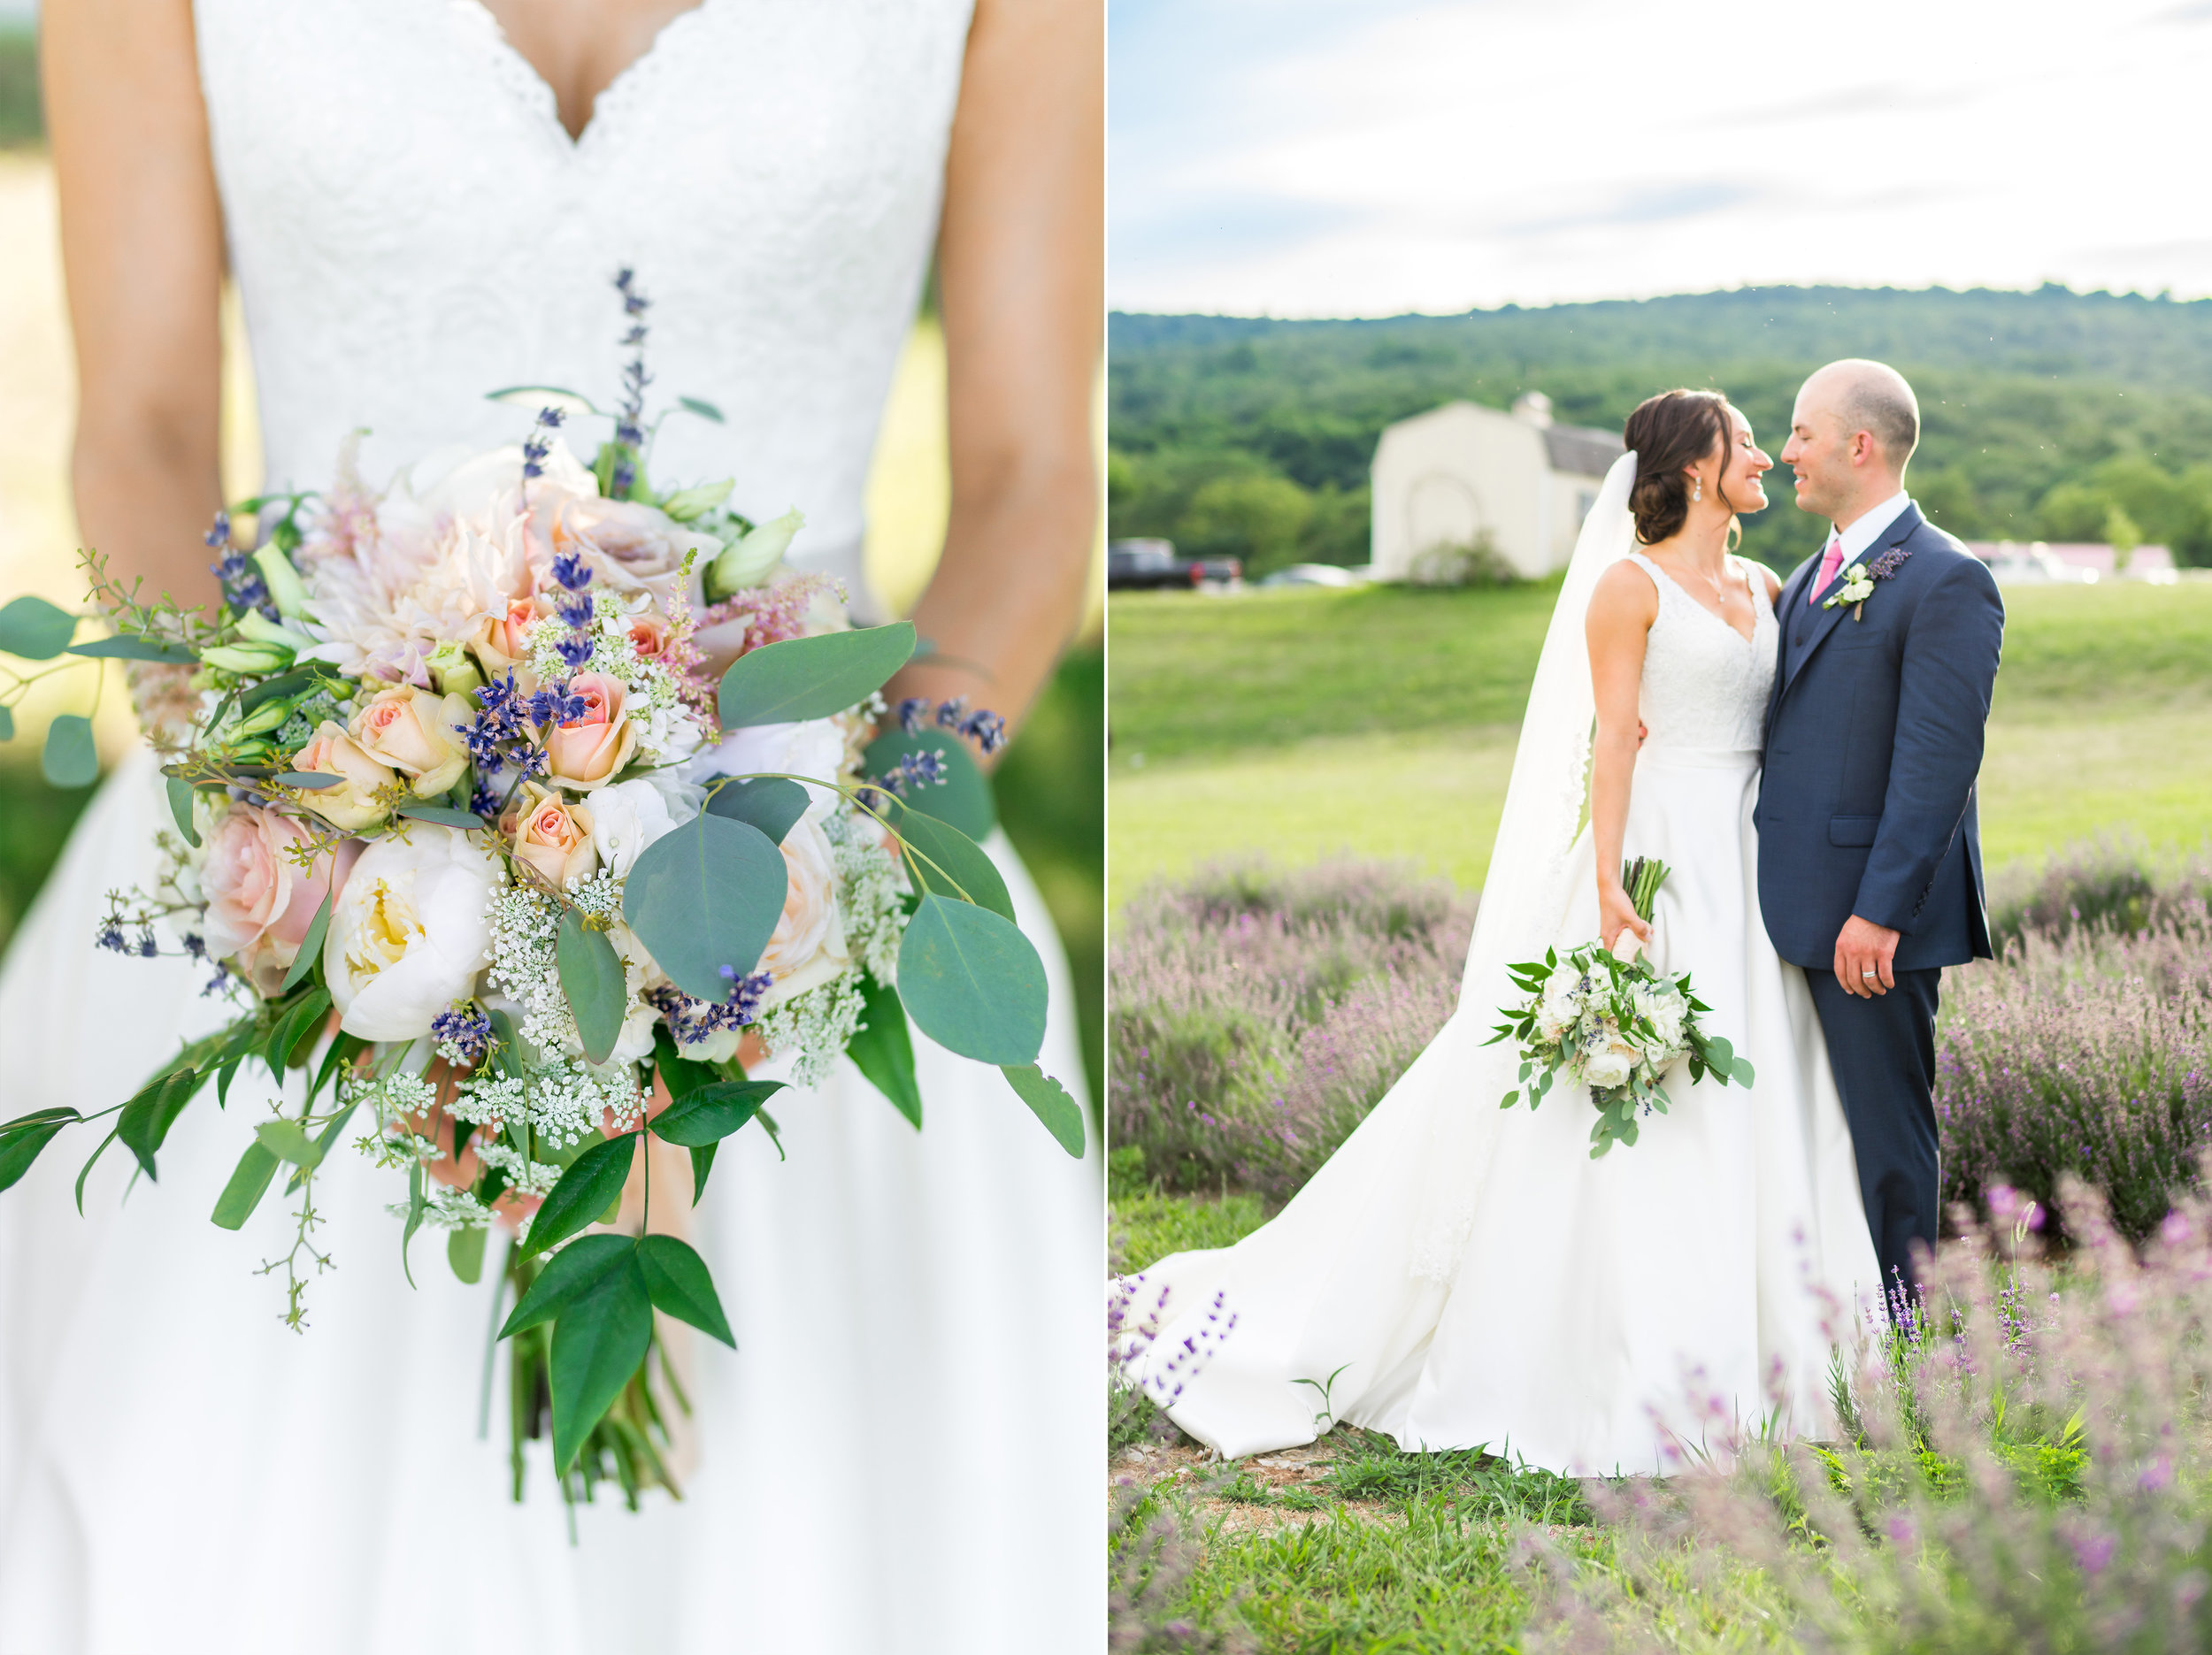 Wedding photos in lavender fields Maryland and Virginia